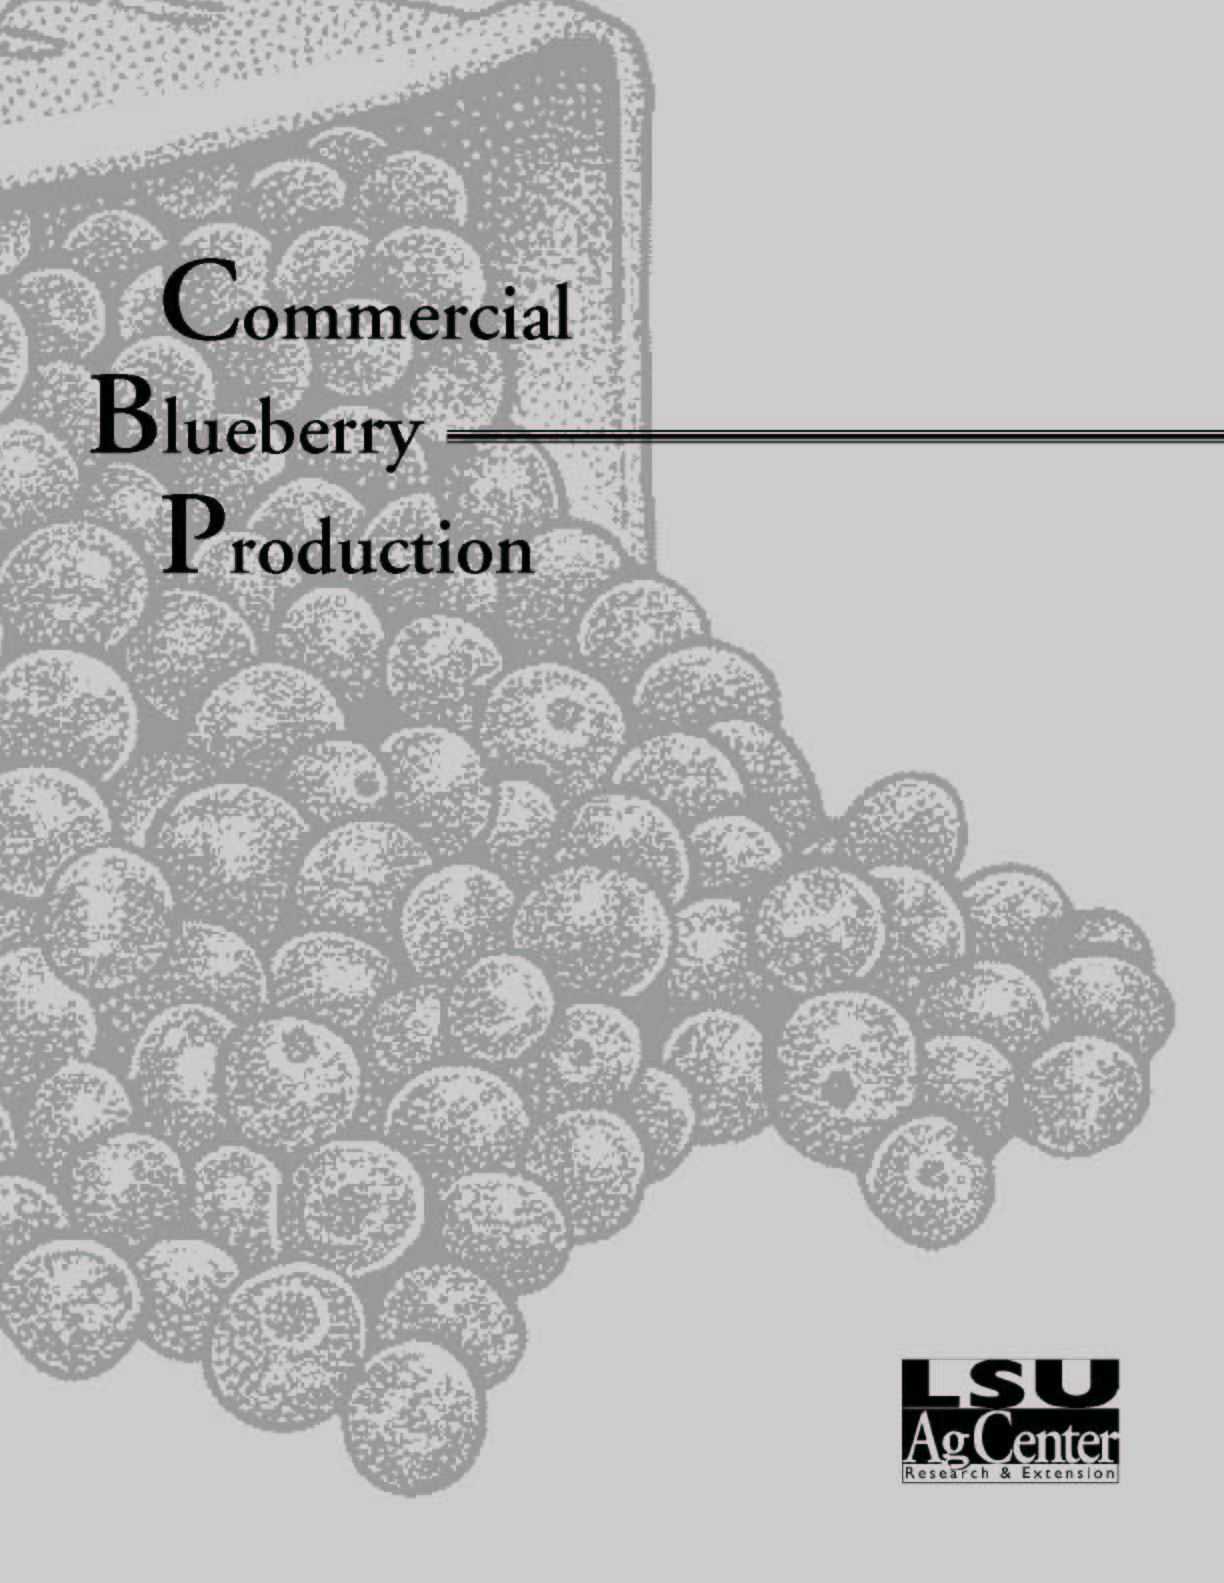 Commercial Blueberry Production